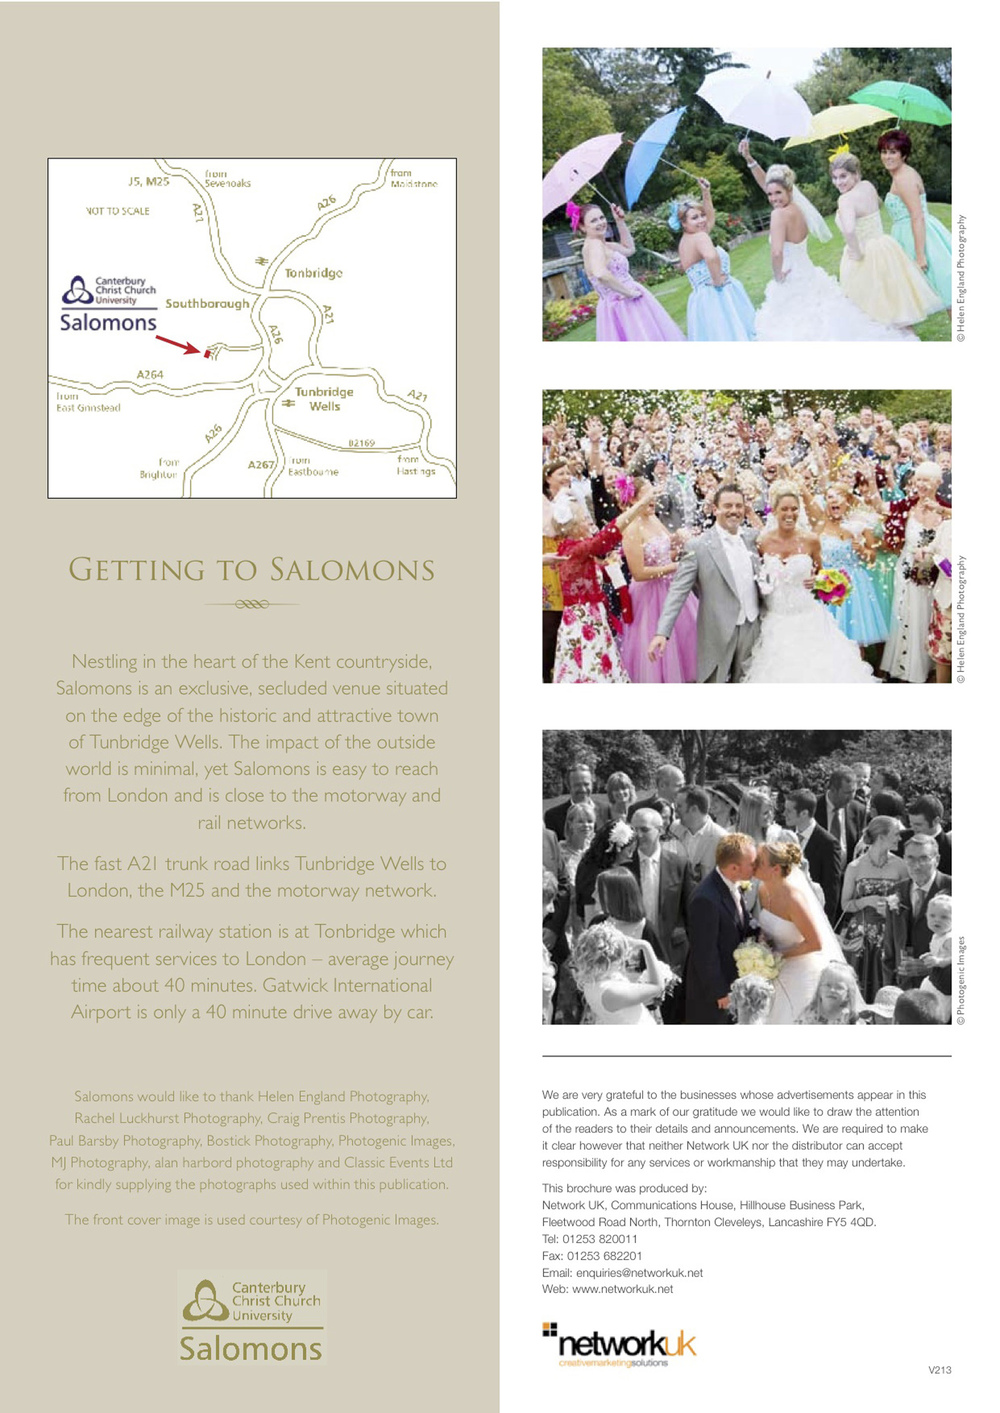 a 7 Salomons Brochure 6 June 2012h.jpg